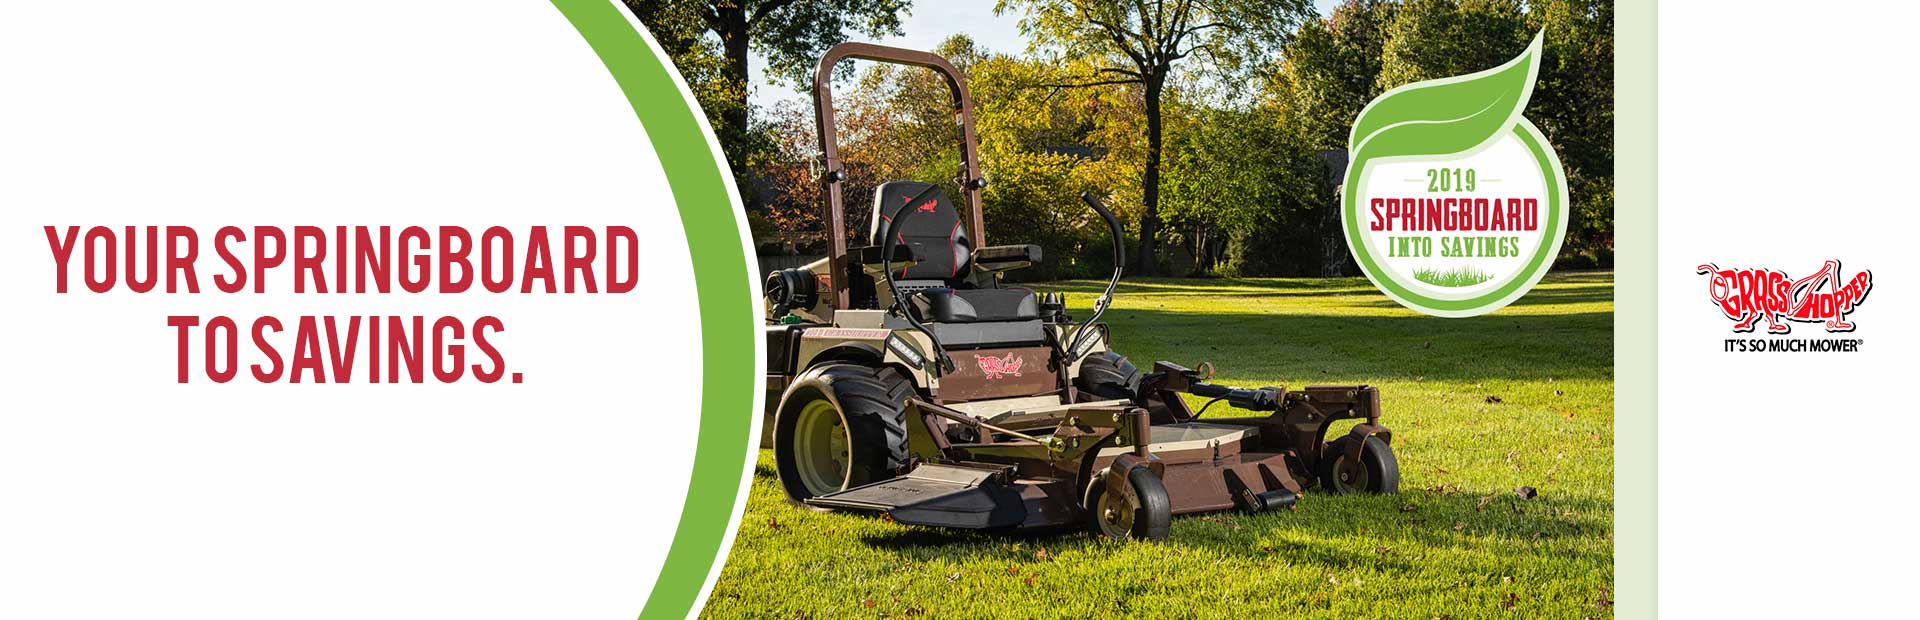 Home Mere S Lawnmower North Fort Myers Fl 239 995 3388